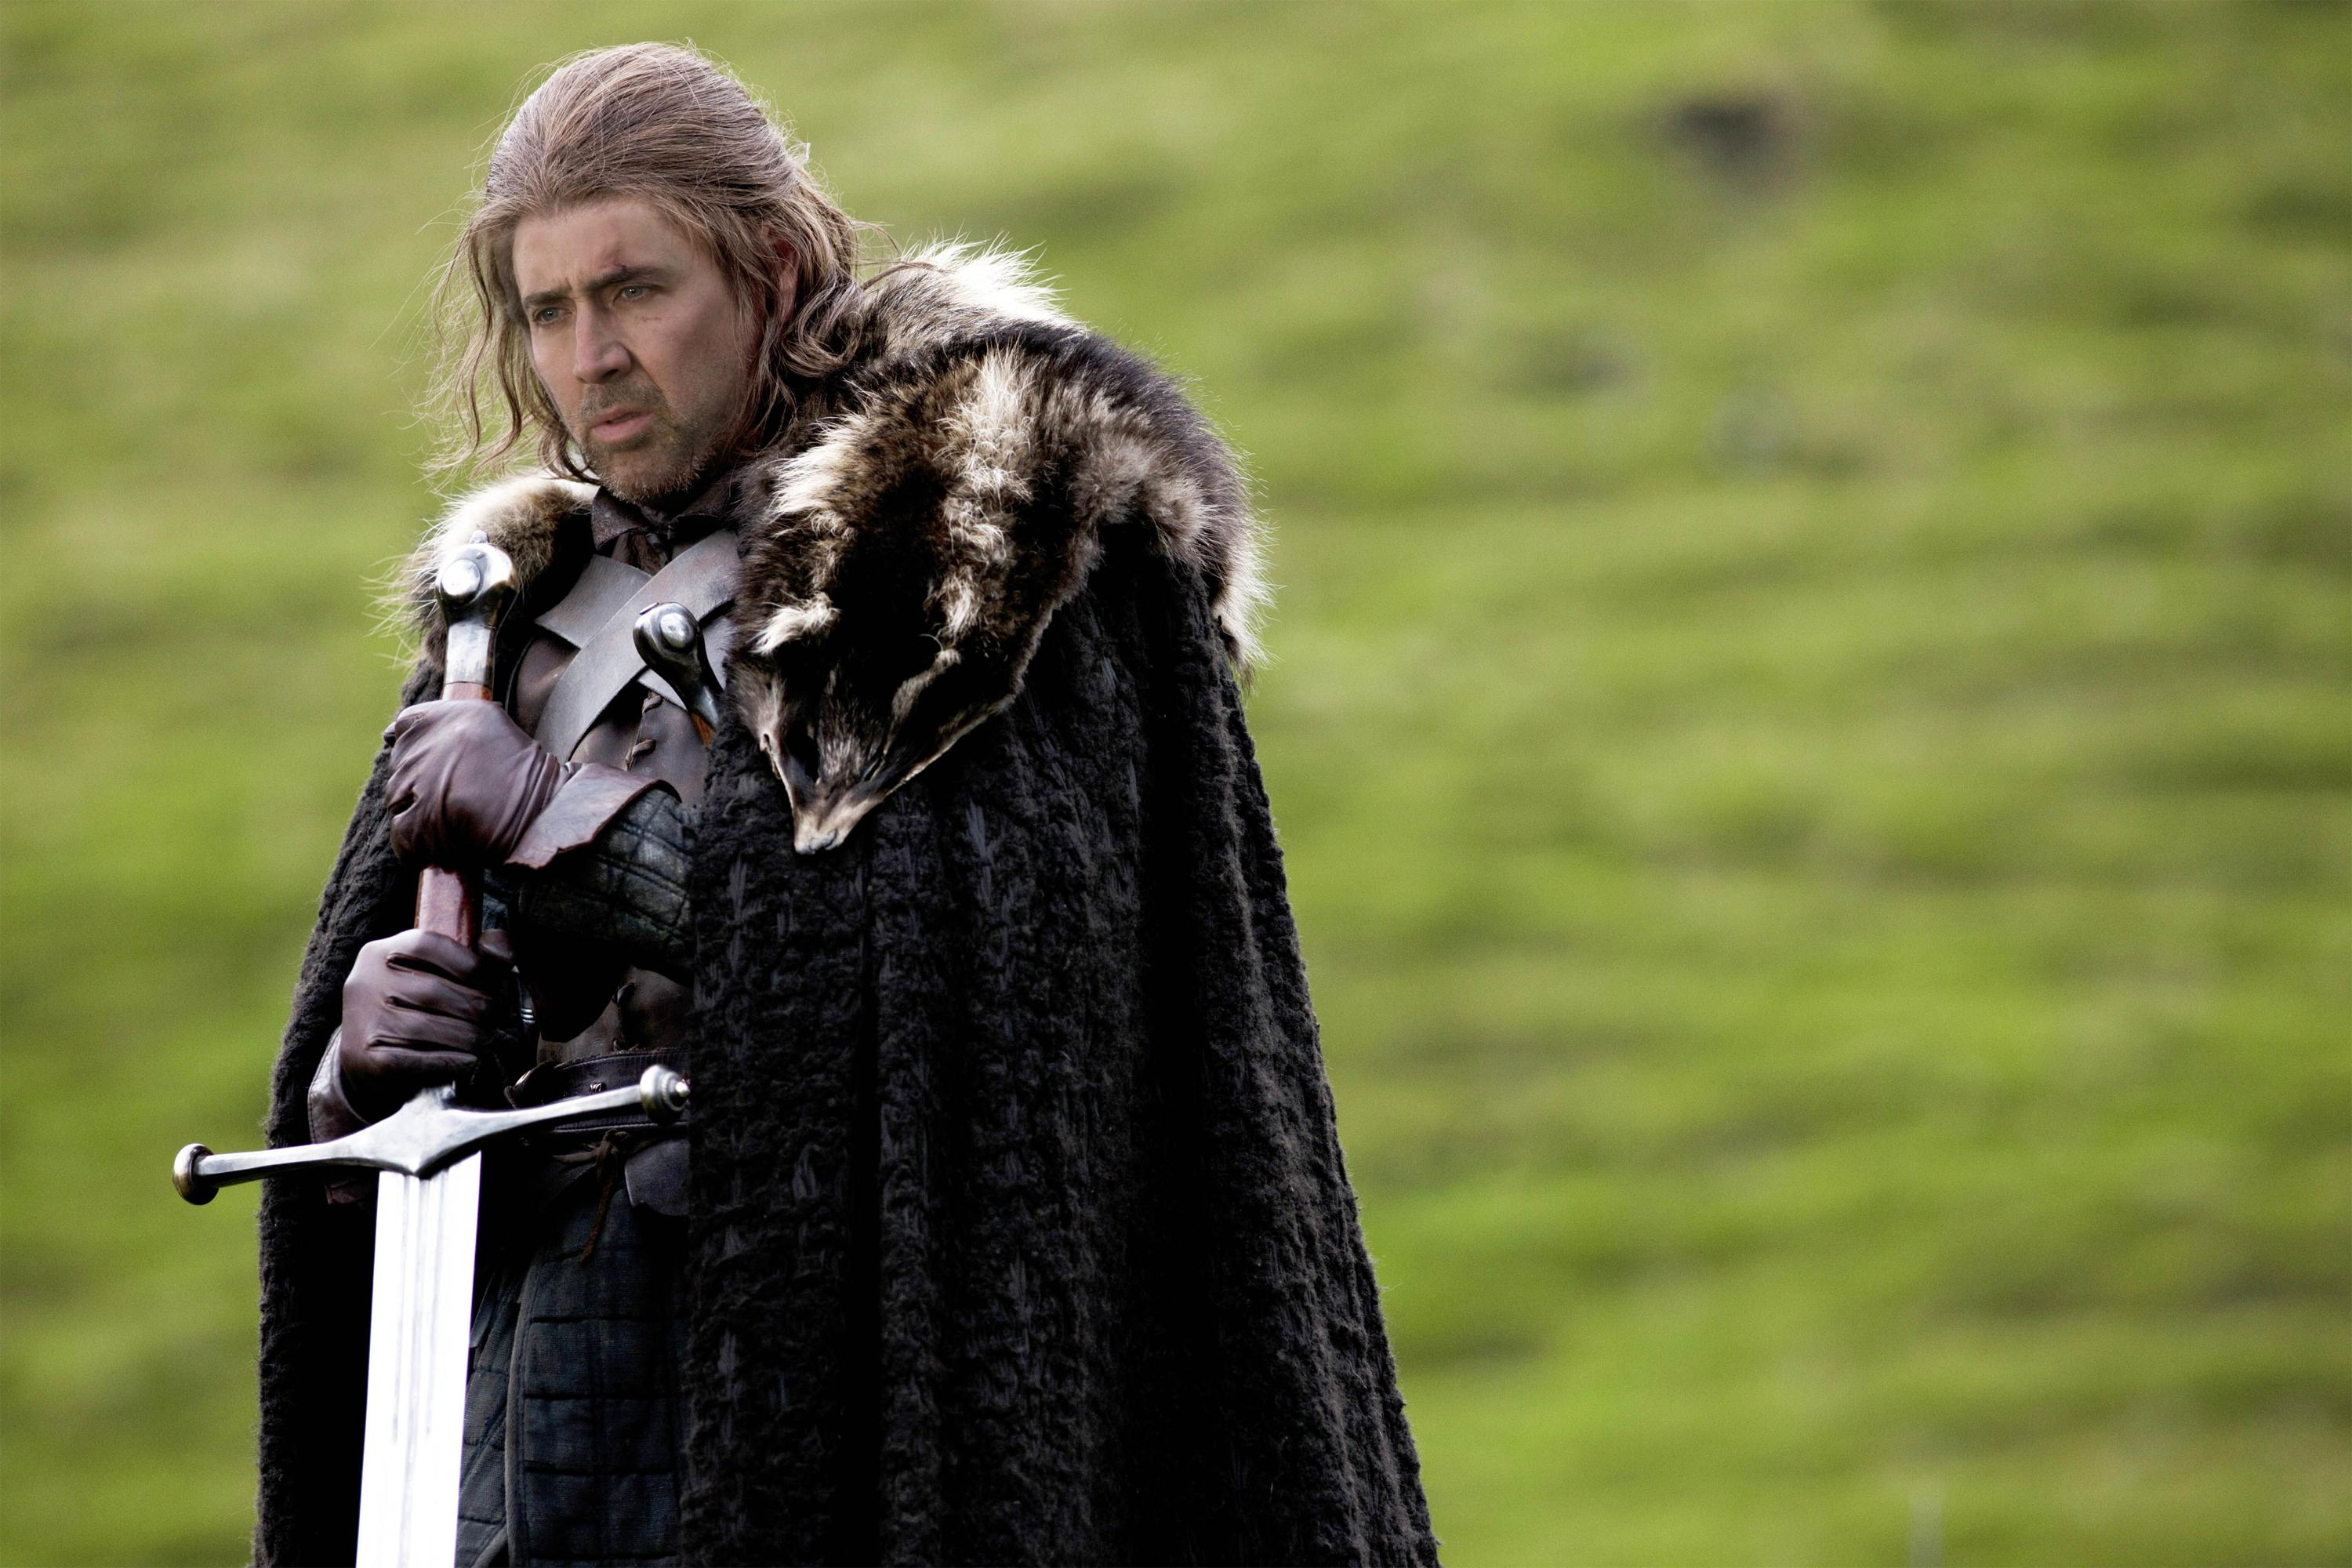 If Nic Cage were ALL of the 'Game of Thrones' characters